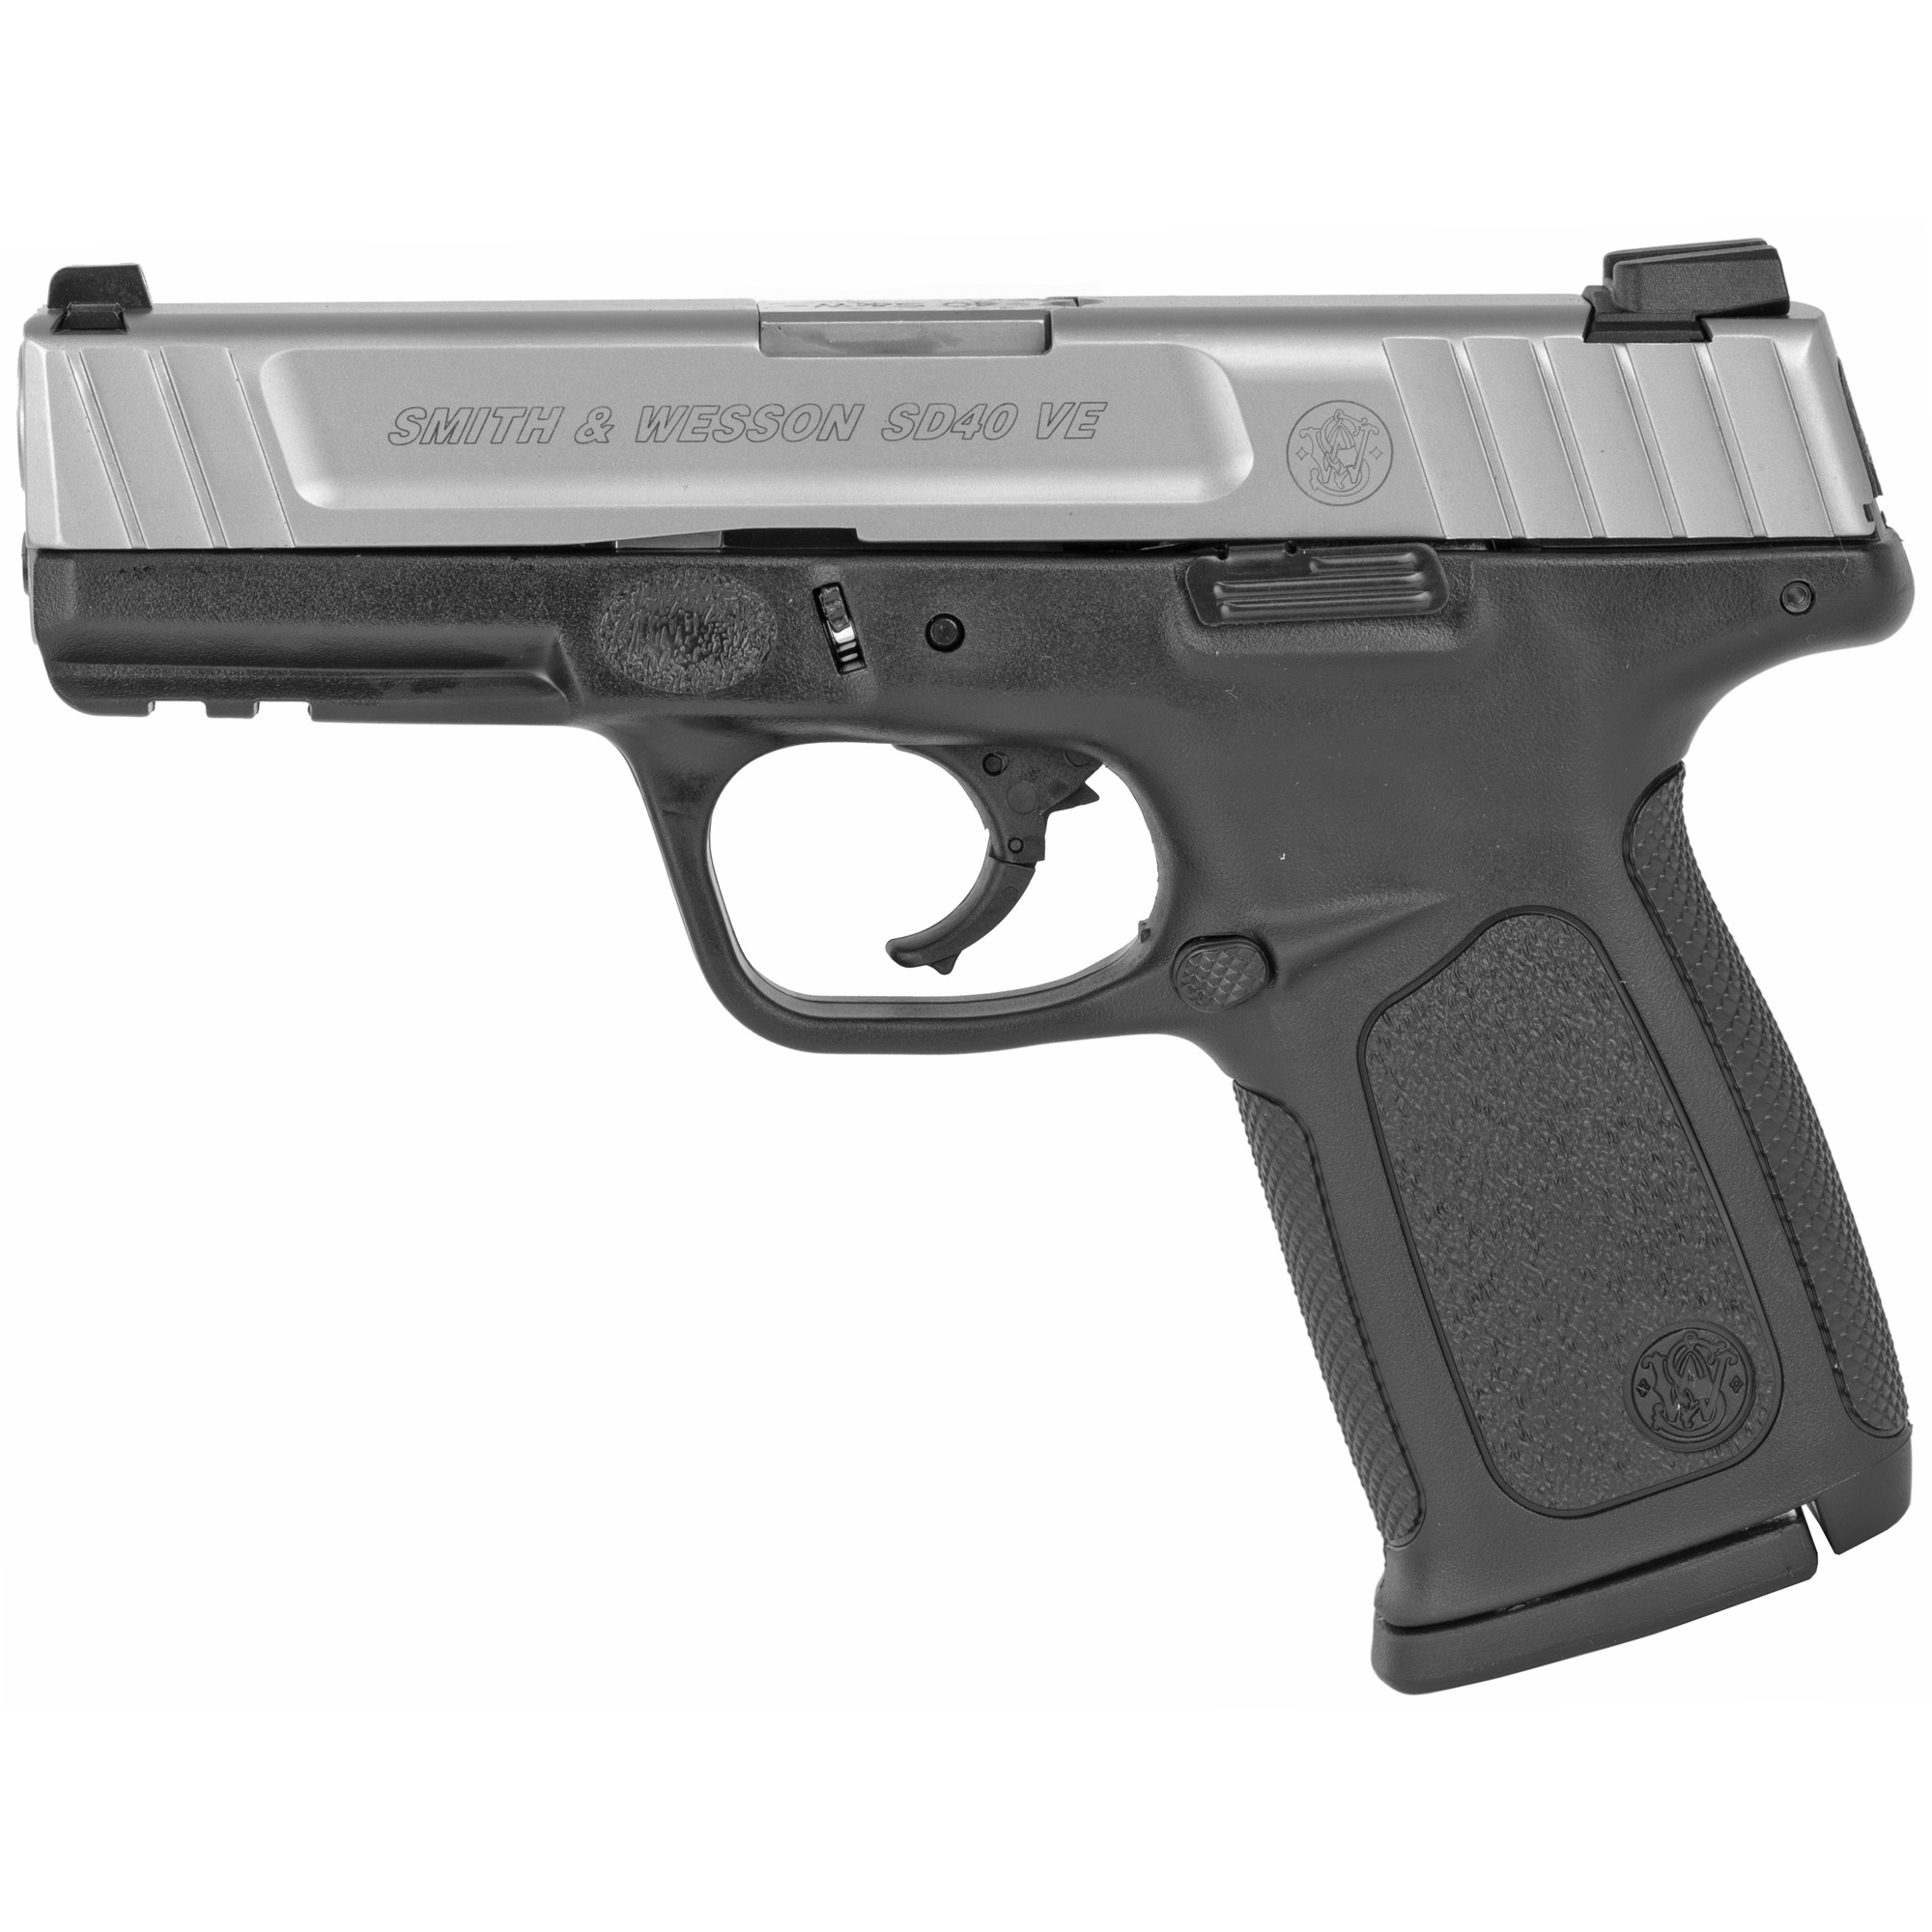 "S&W Model SD40 VE comes with SDT (Self Defense Trigger) for optimal"" consistent pull first round to last. The slim ergonomic grip is textured as well as having a textured finger locator. Includes two 10-round magazines."